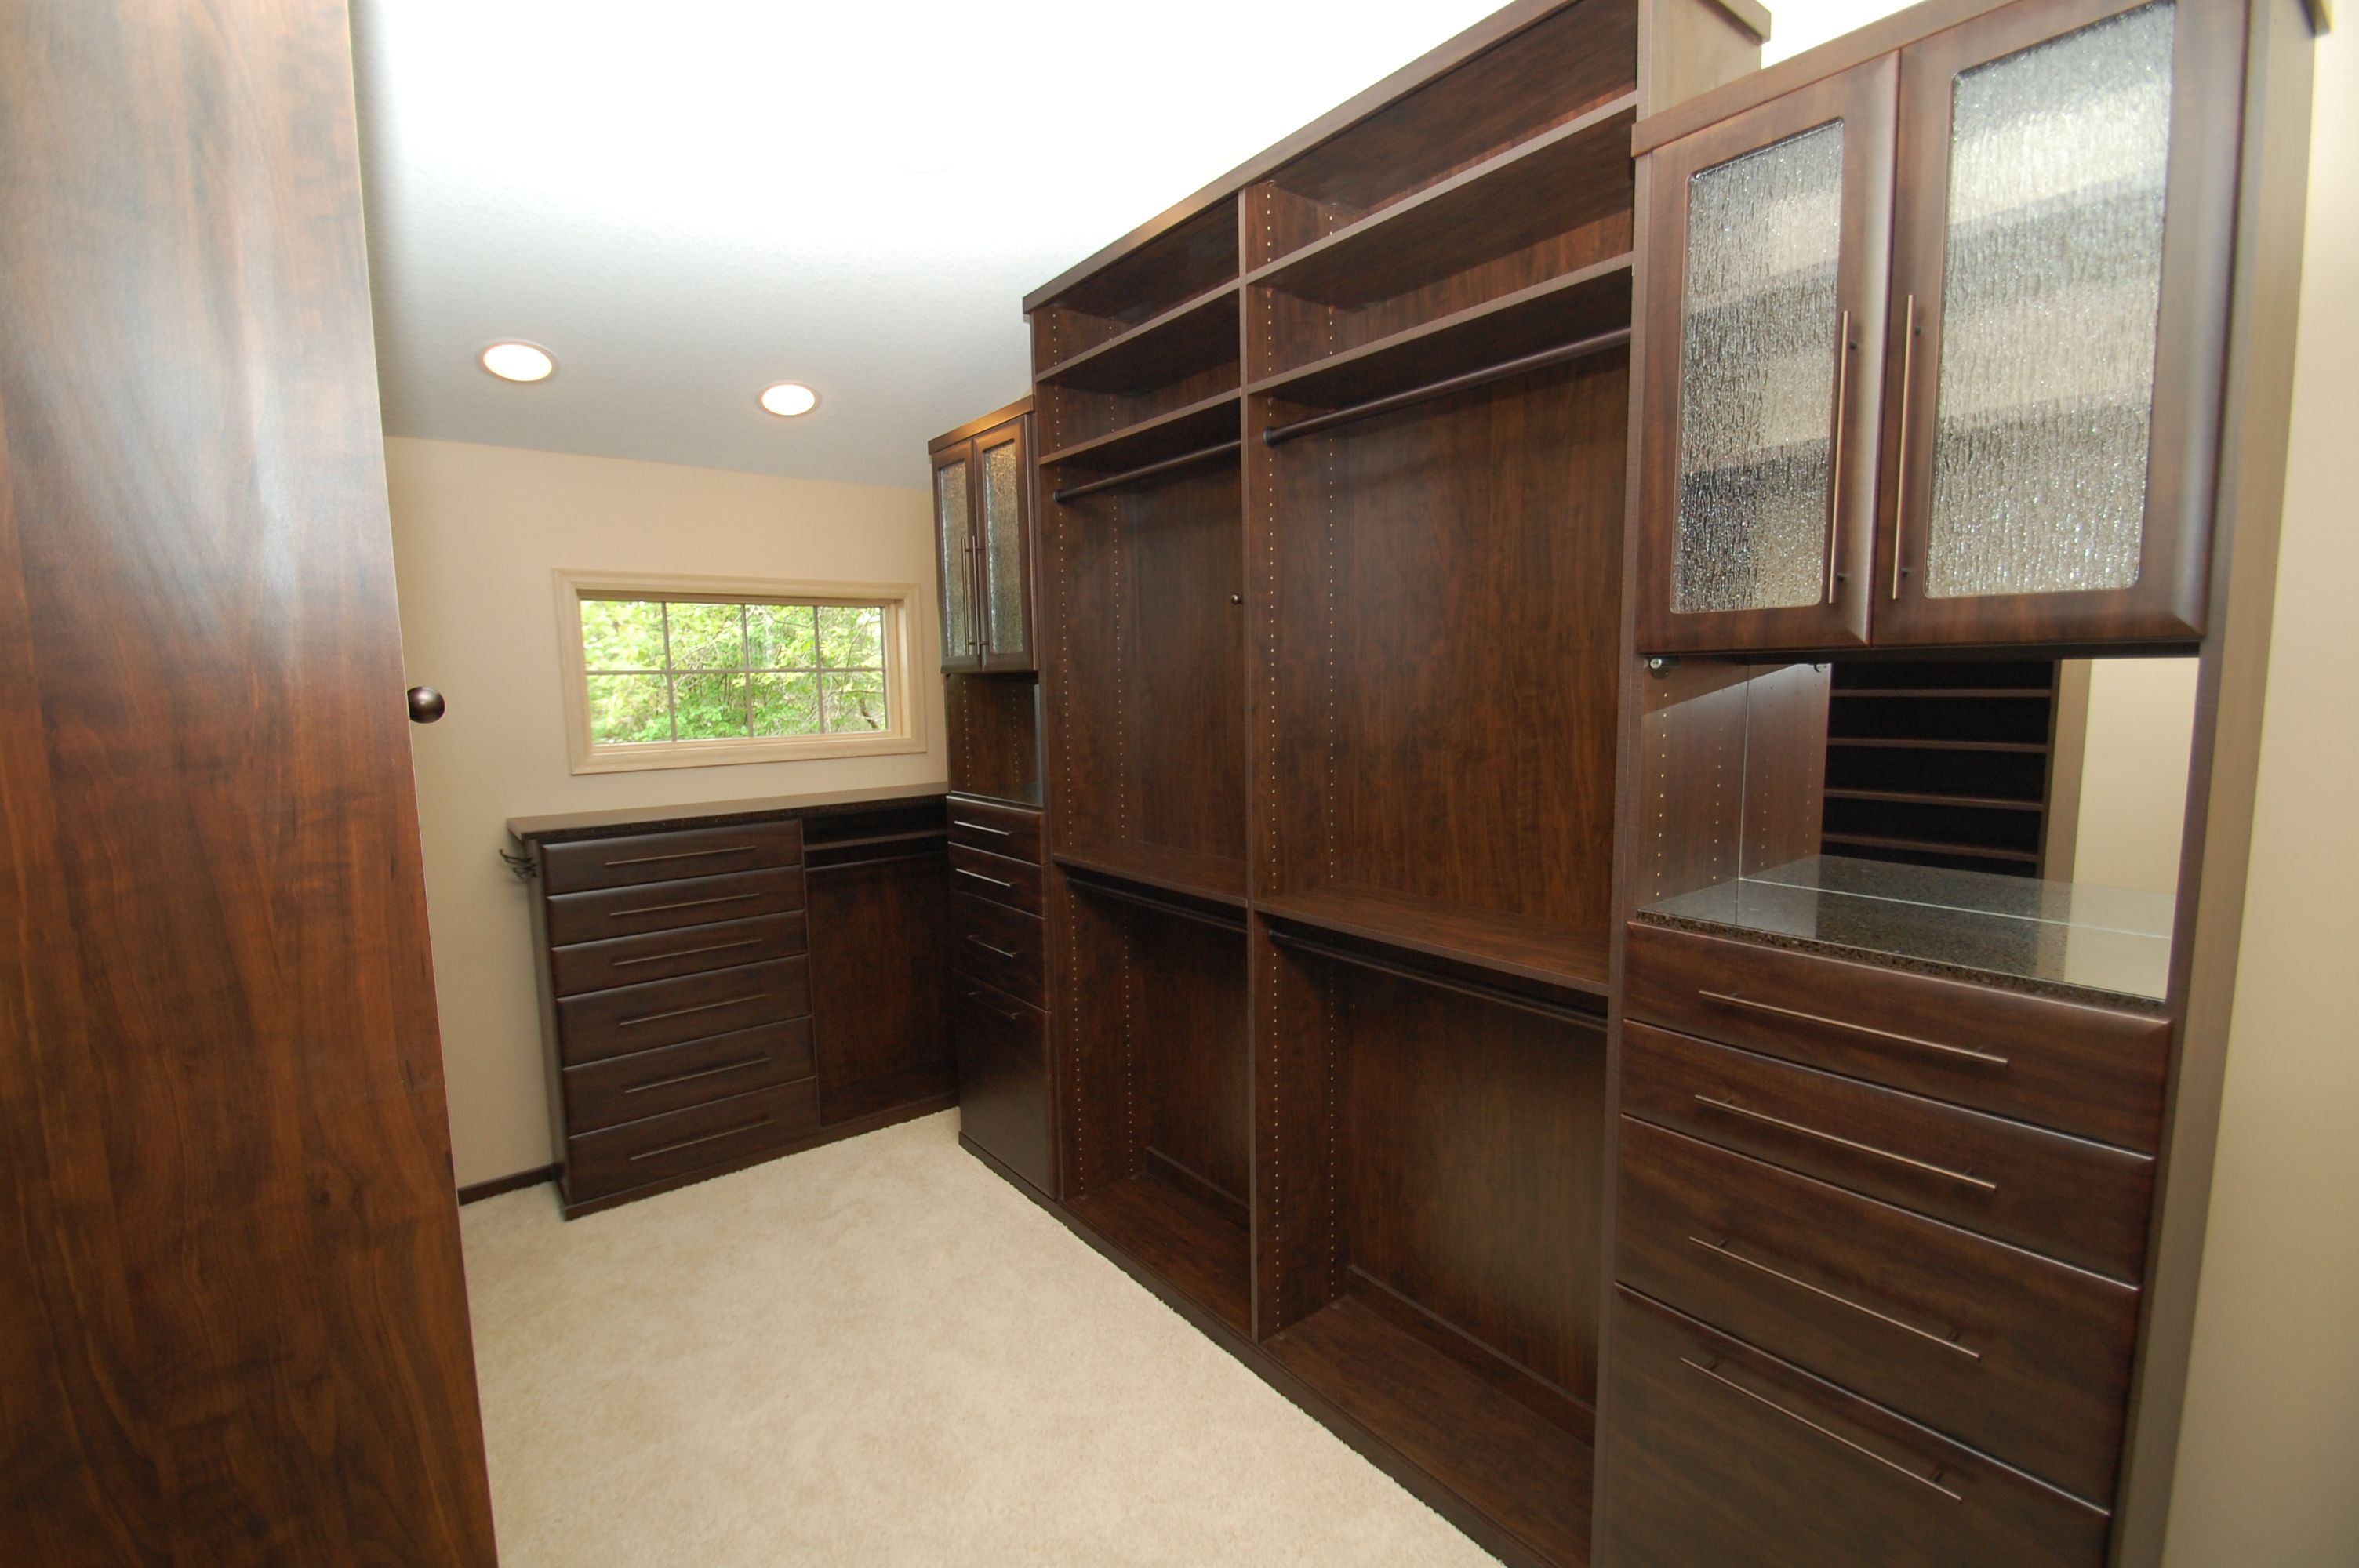 Chocolate Pear Master Closet From Twin Cities Closet Co.